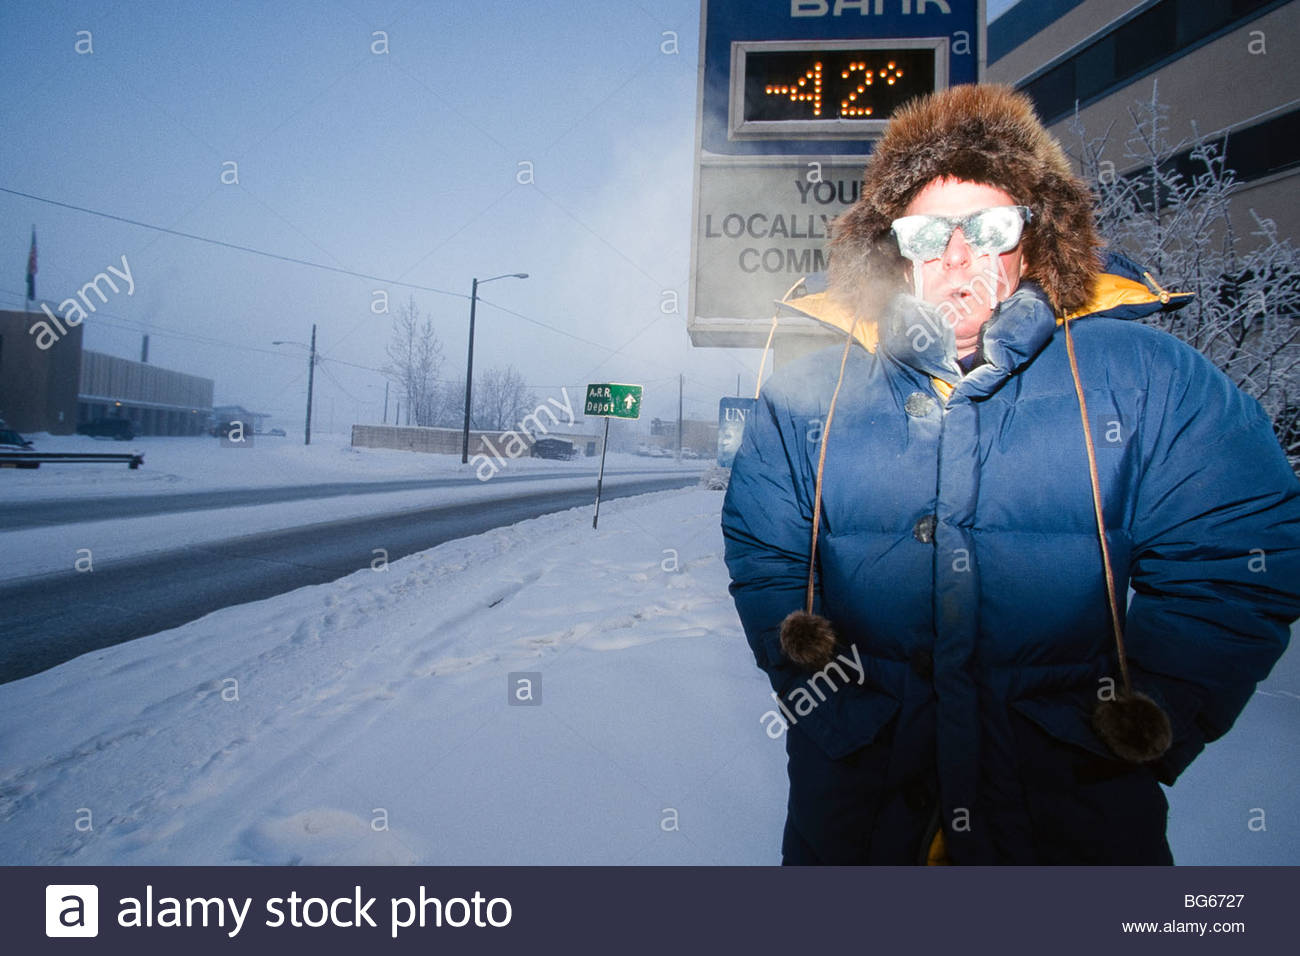 Alaska. Fairbanks. At -42 degrees F, icicles may grow on your glasses. (MR) - Stock Image